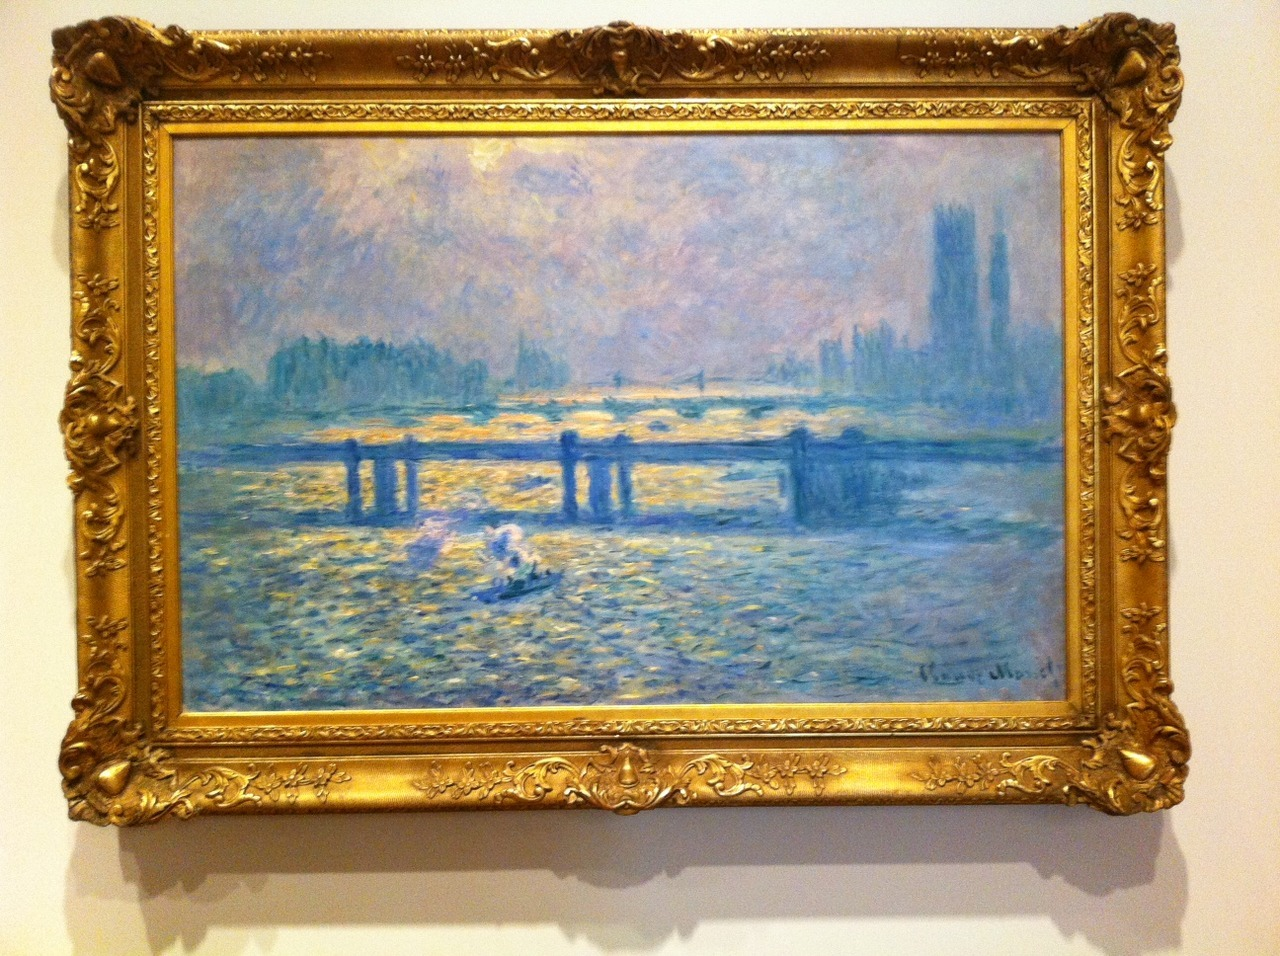 Shot this when I went to the BMA, It's gorgeous! Claude Monet- Waterloo Bridge, Sunlight Effect with Smoke, Oil on Canvas, 1903